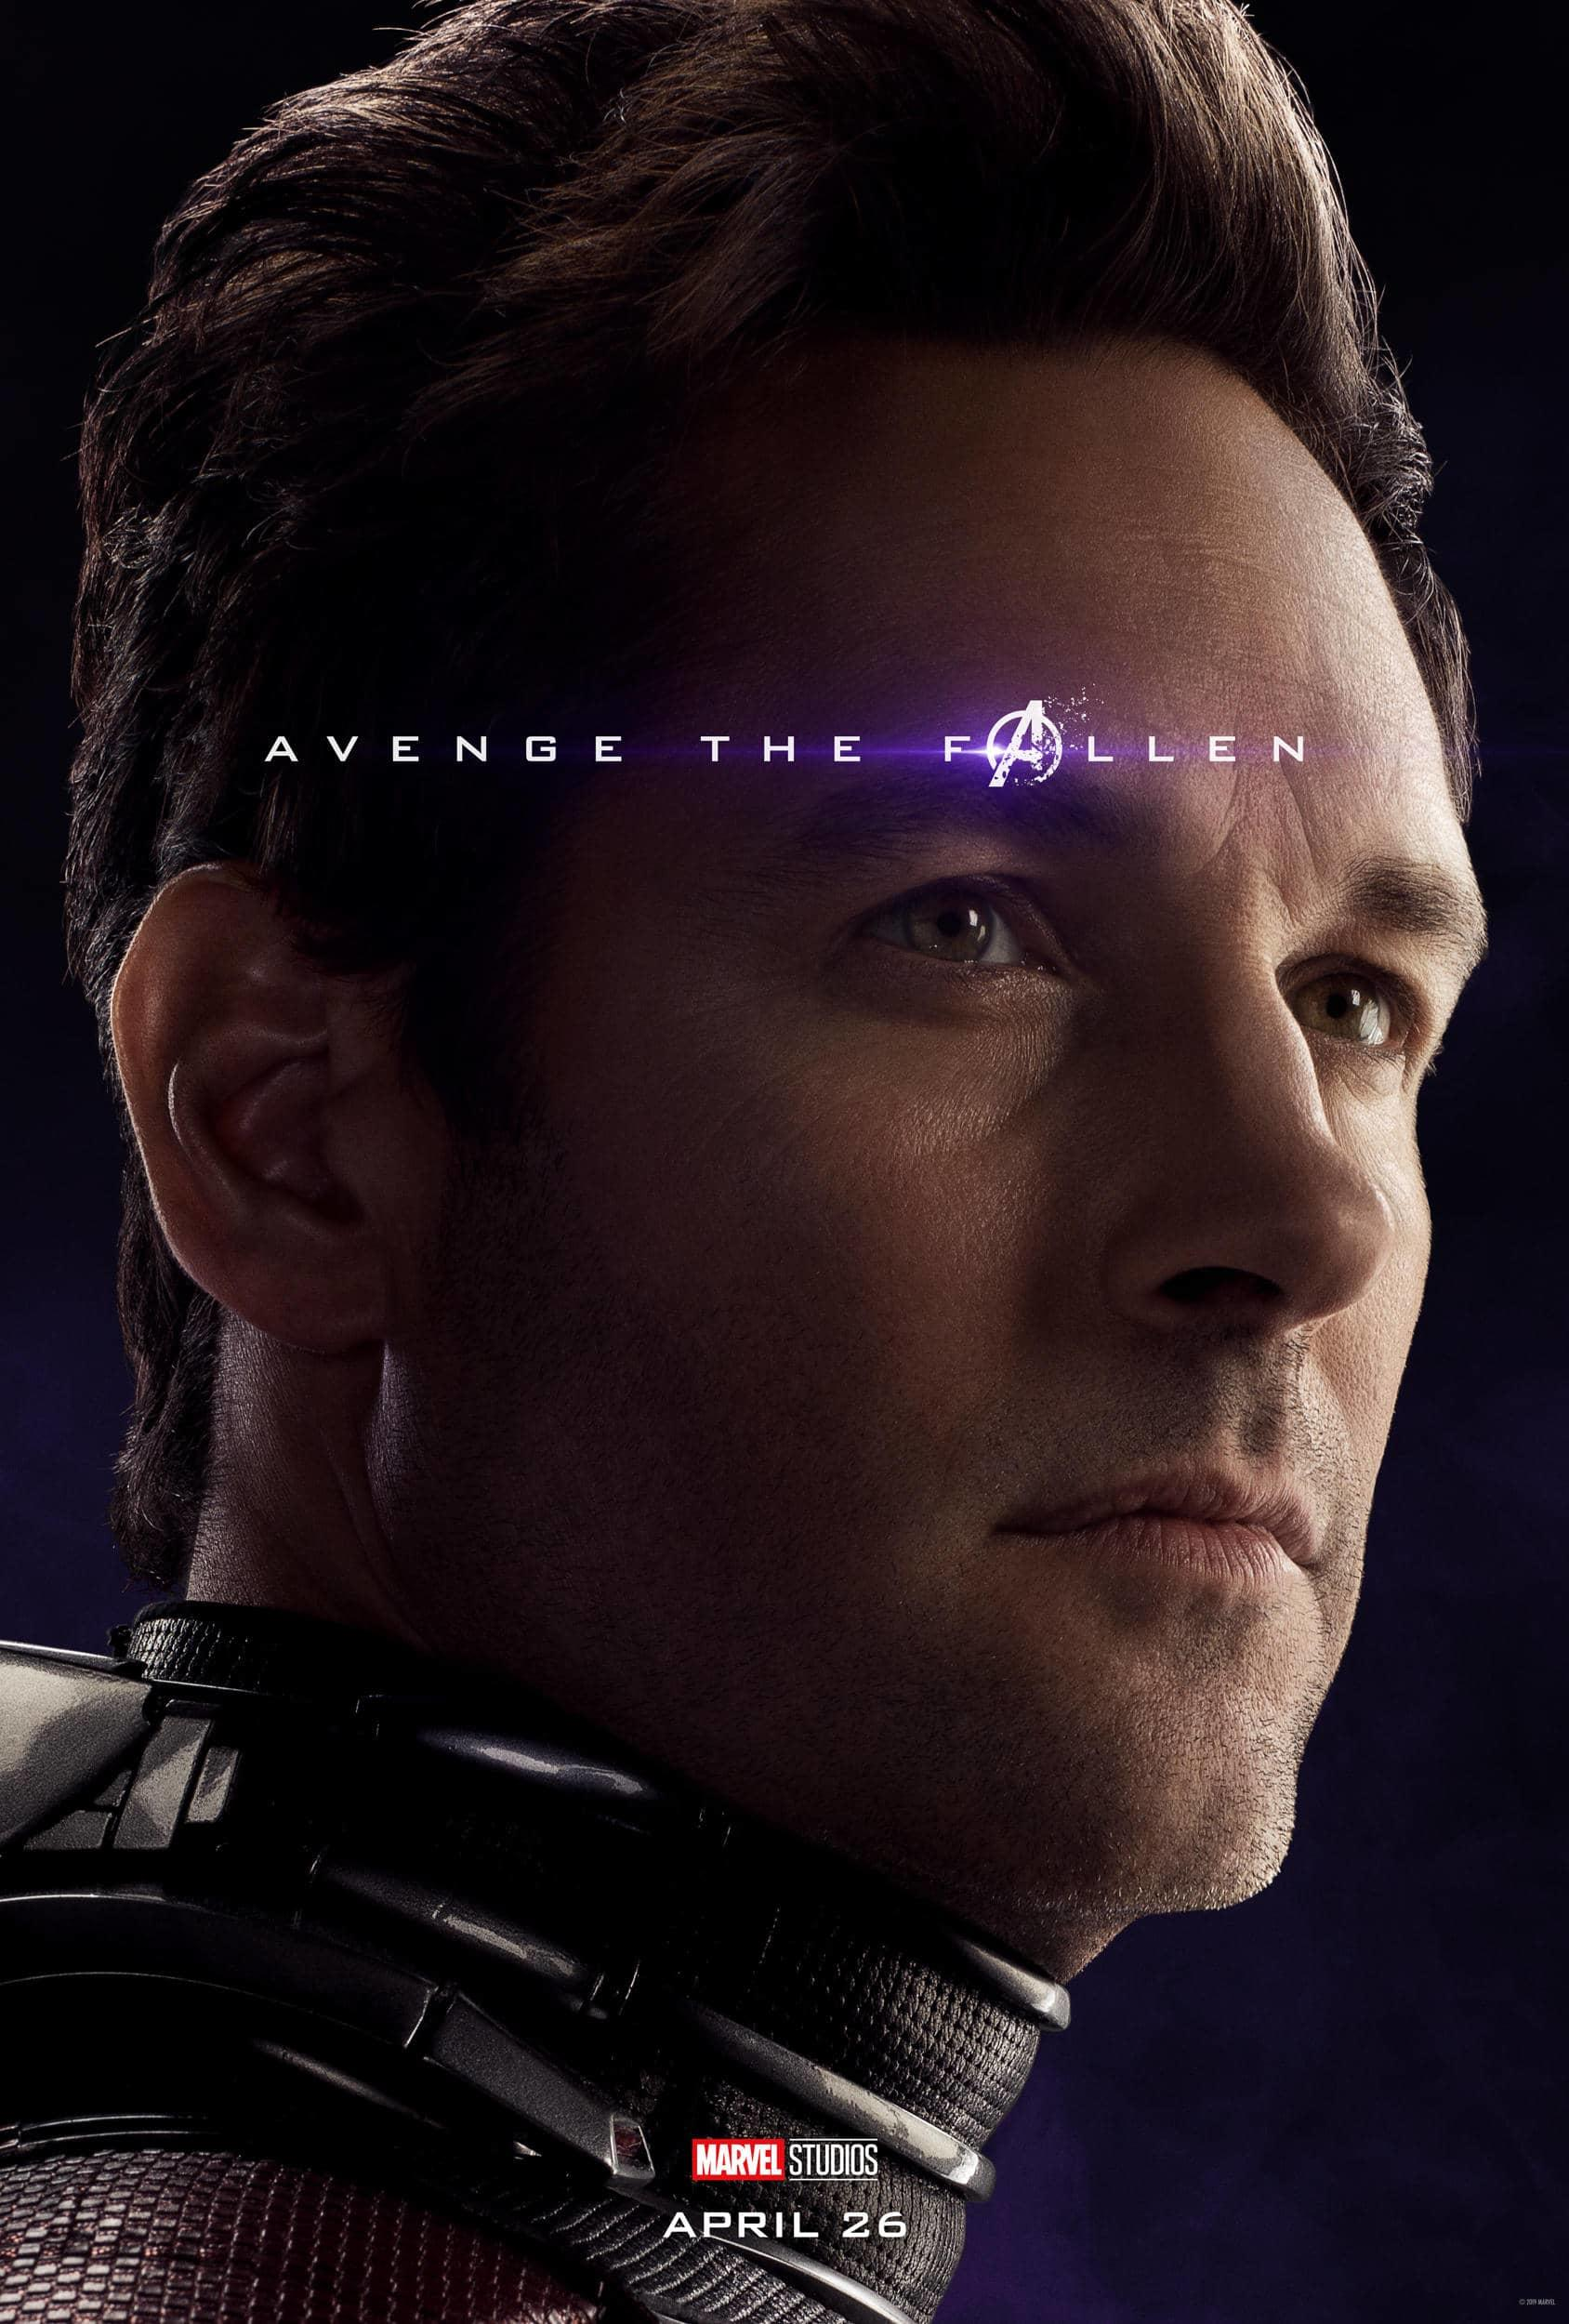 Marvel Studios' Avengers: Endgame Movie Cast Ant-Man (Scott Lang) Paul Rudd